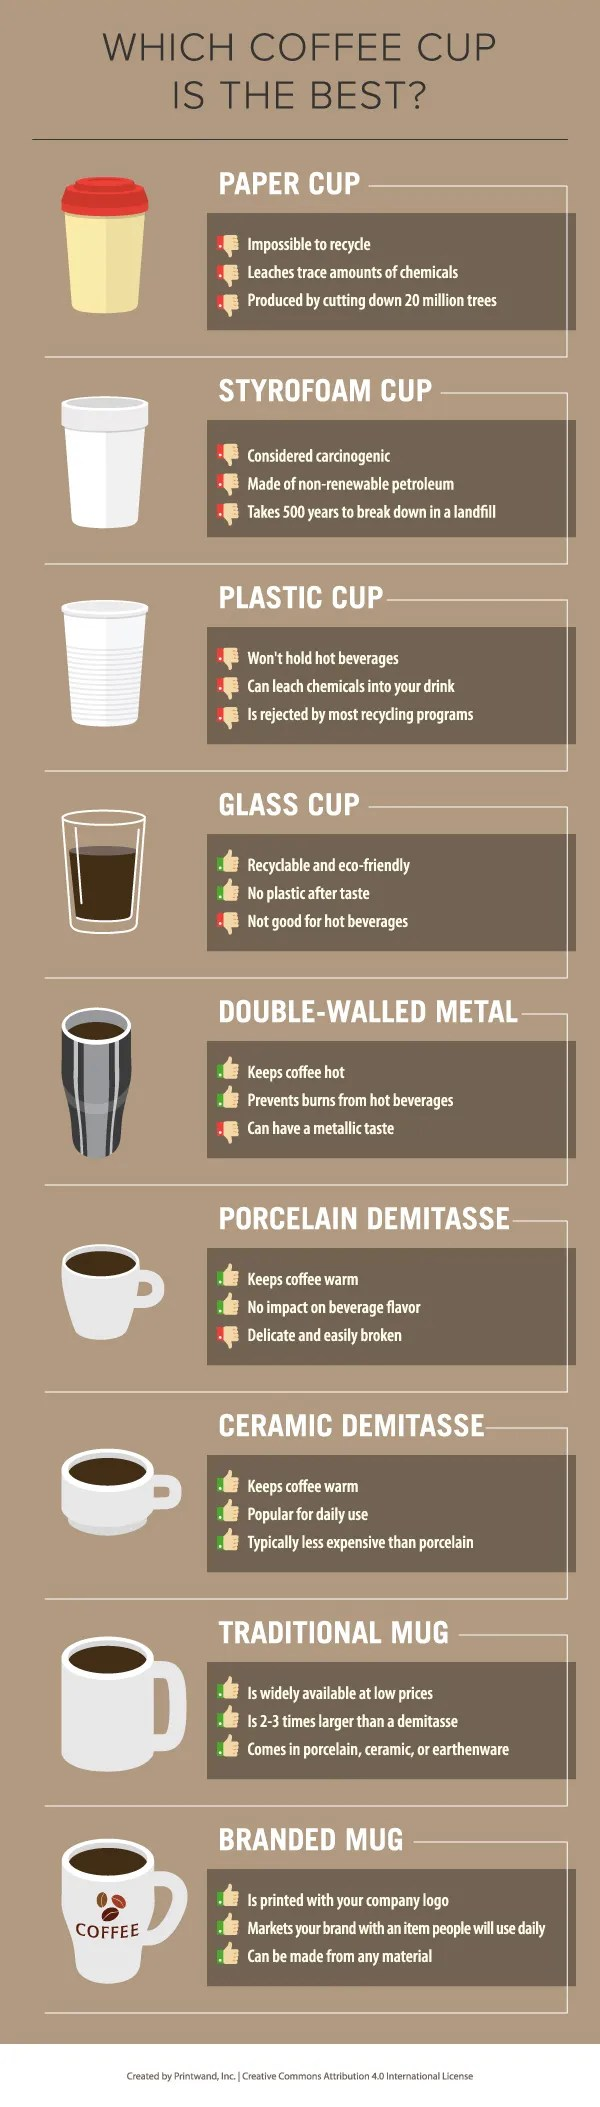 best-coffee-mugs-cups-material-reusable-disposable